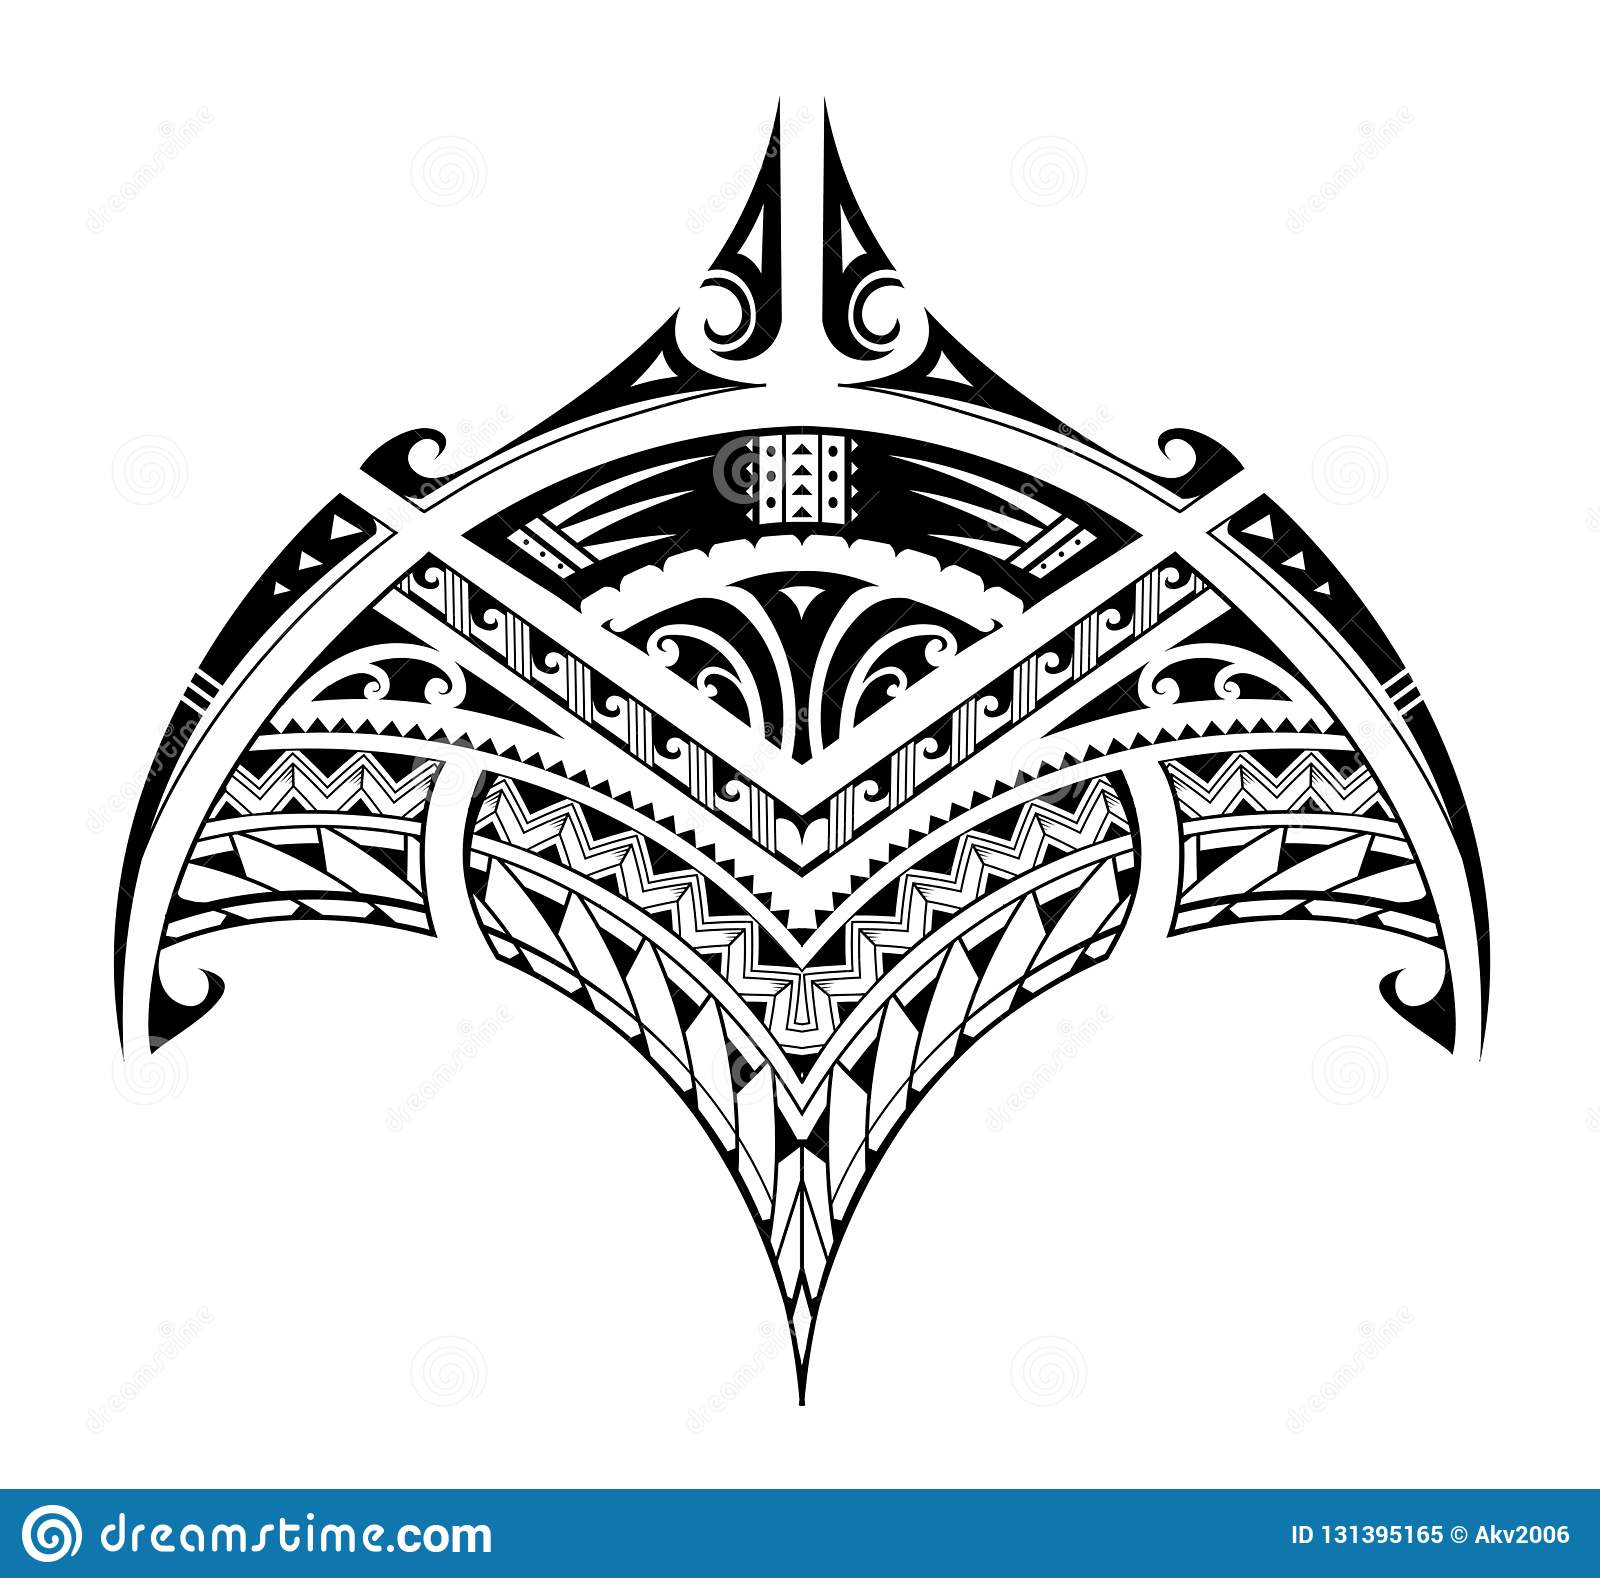 Polynesian Ethnic Style Tattoo For Bicep Area Stock Vector